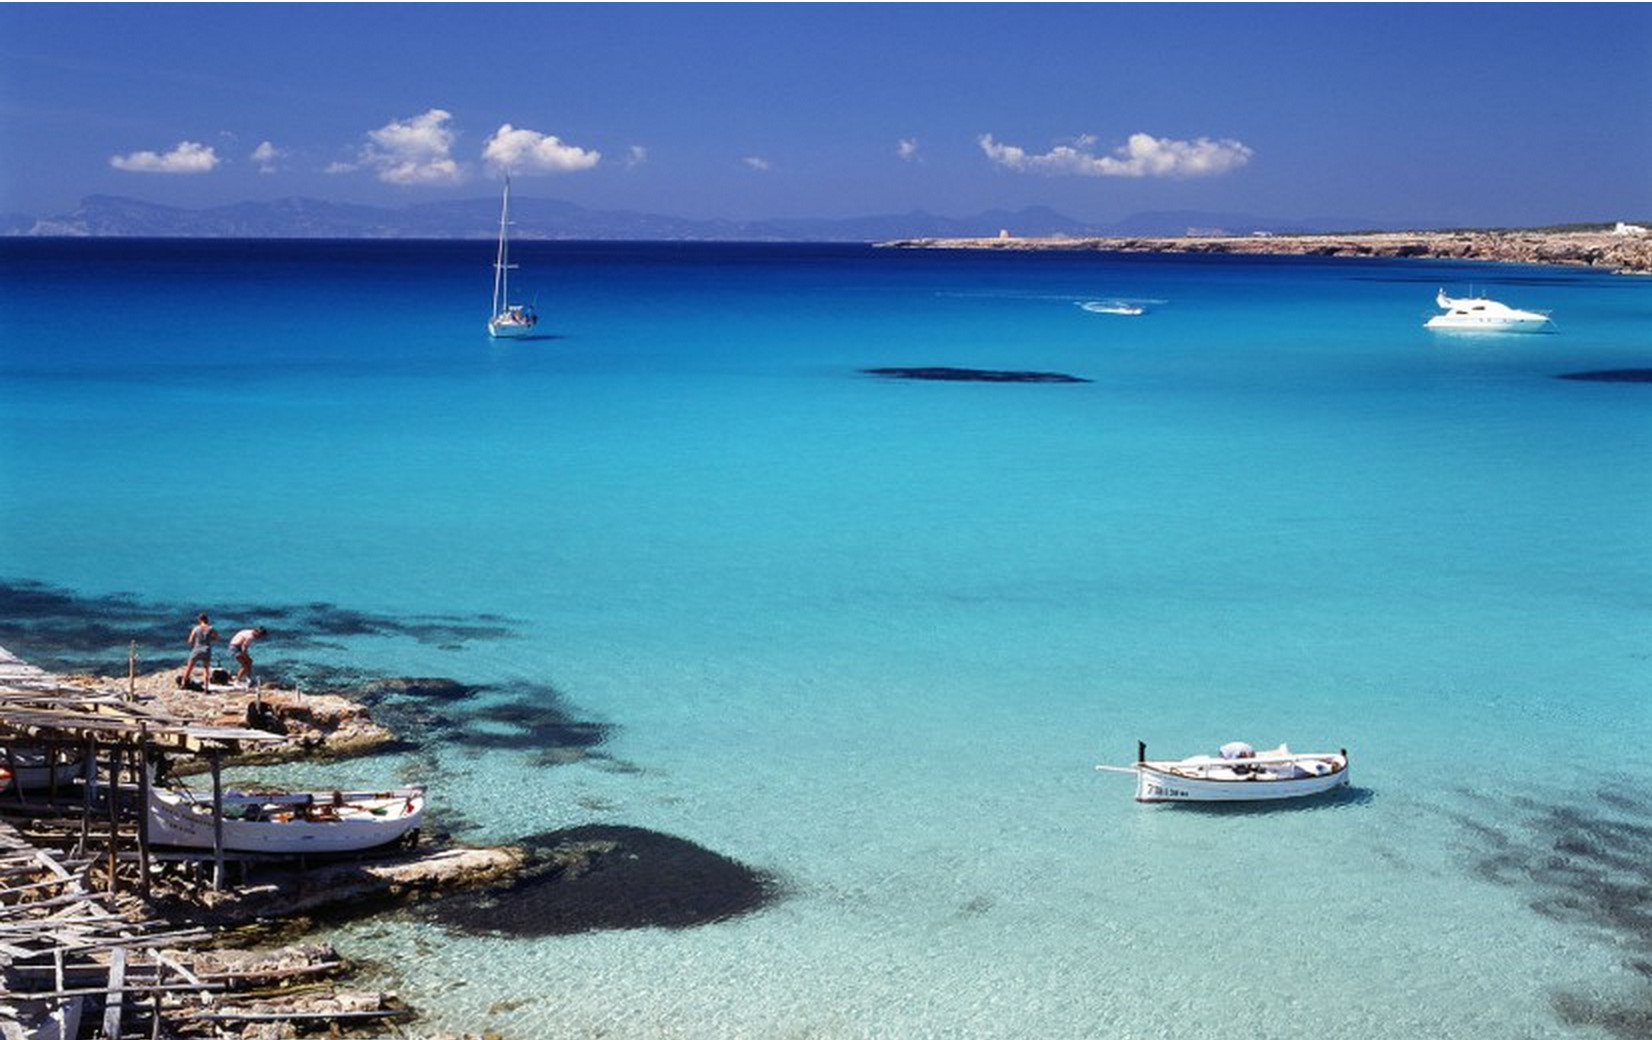 Rental boats anchored in the turquoise waters of Cala Saona (Formentera).